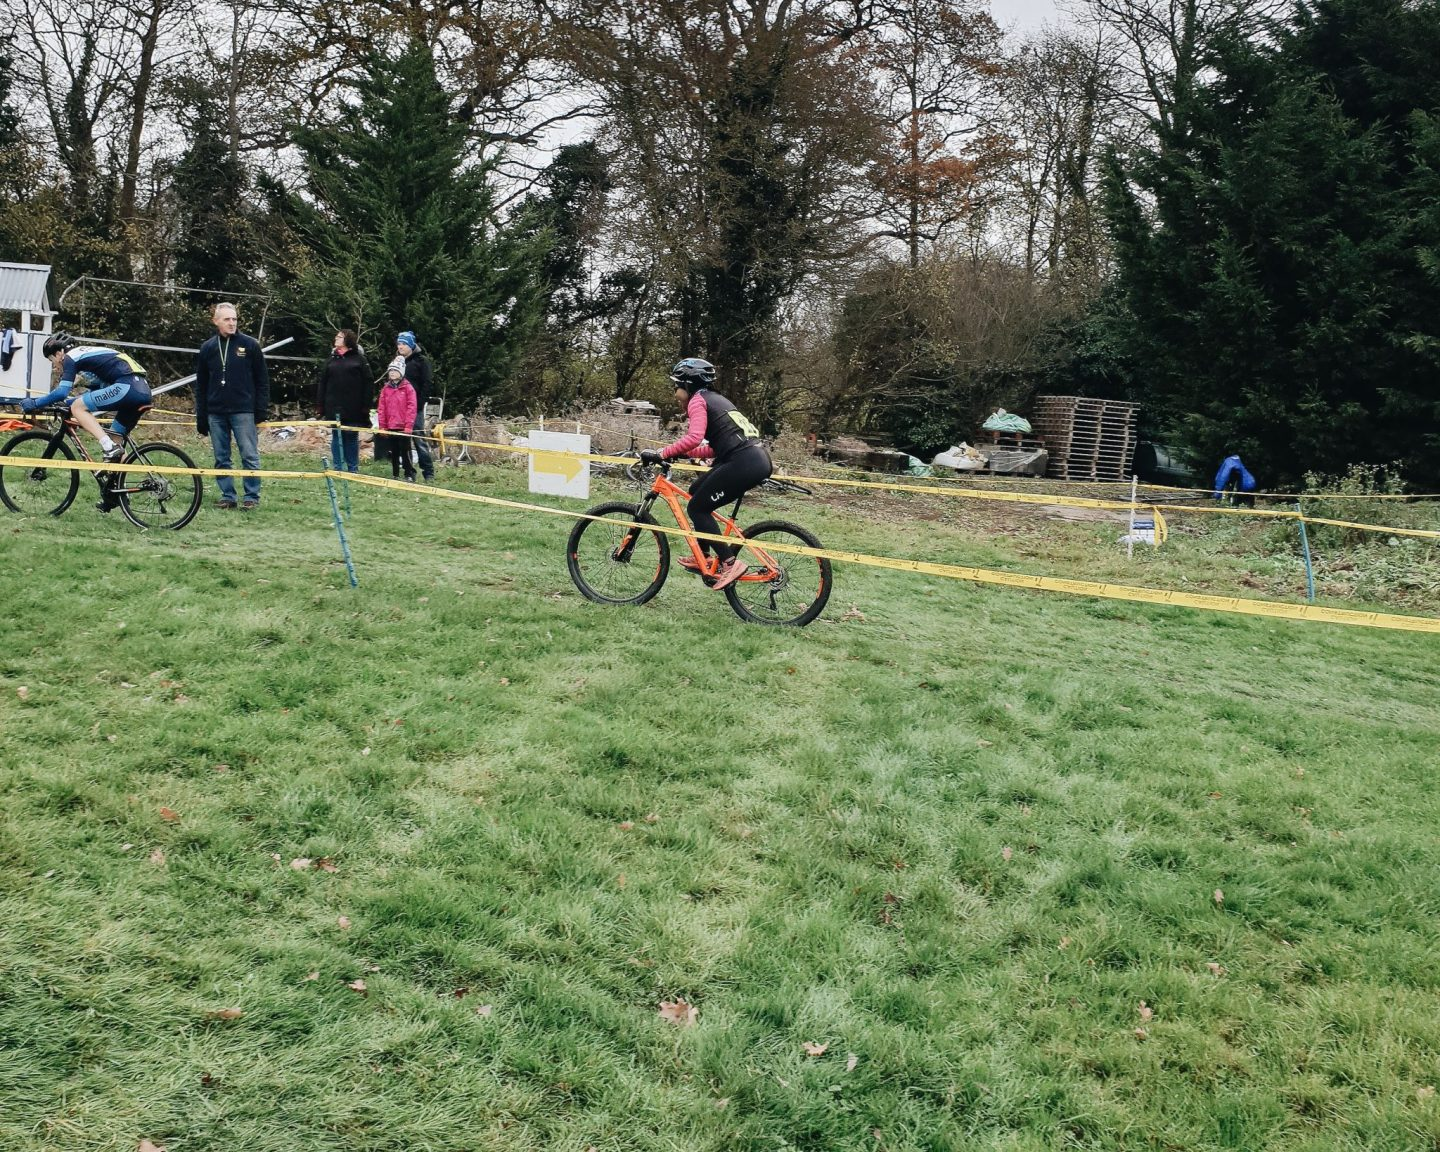 WHAT TO EXPECT AT YOUR FIRST CYCLOCROSS RACE